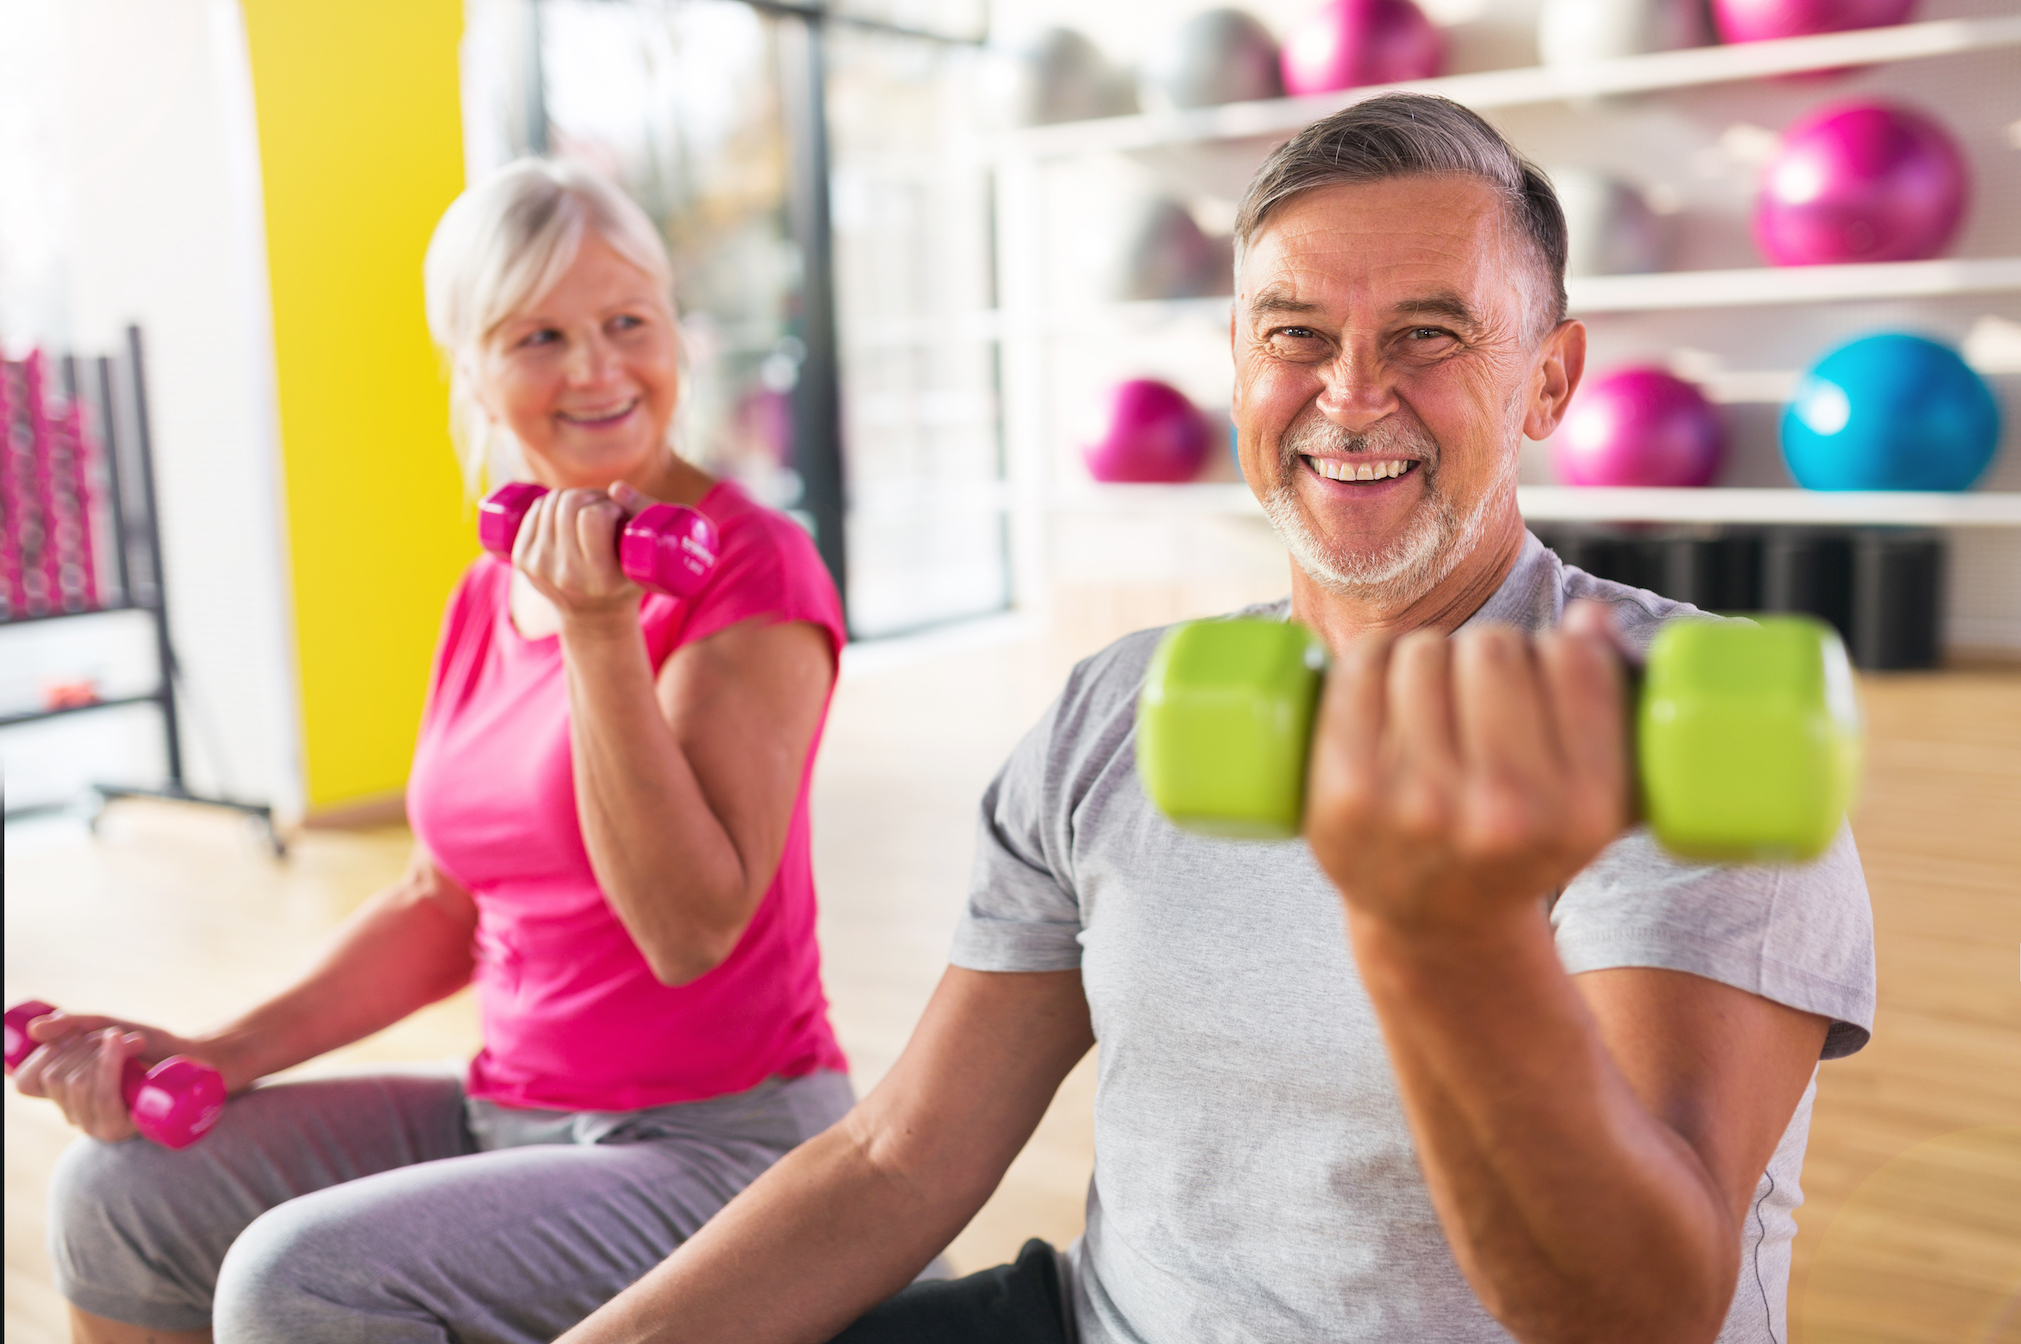 Prolonged physical activity beginning in mid-life can help keep a person physically fit and active in their old age.